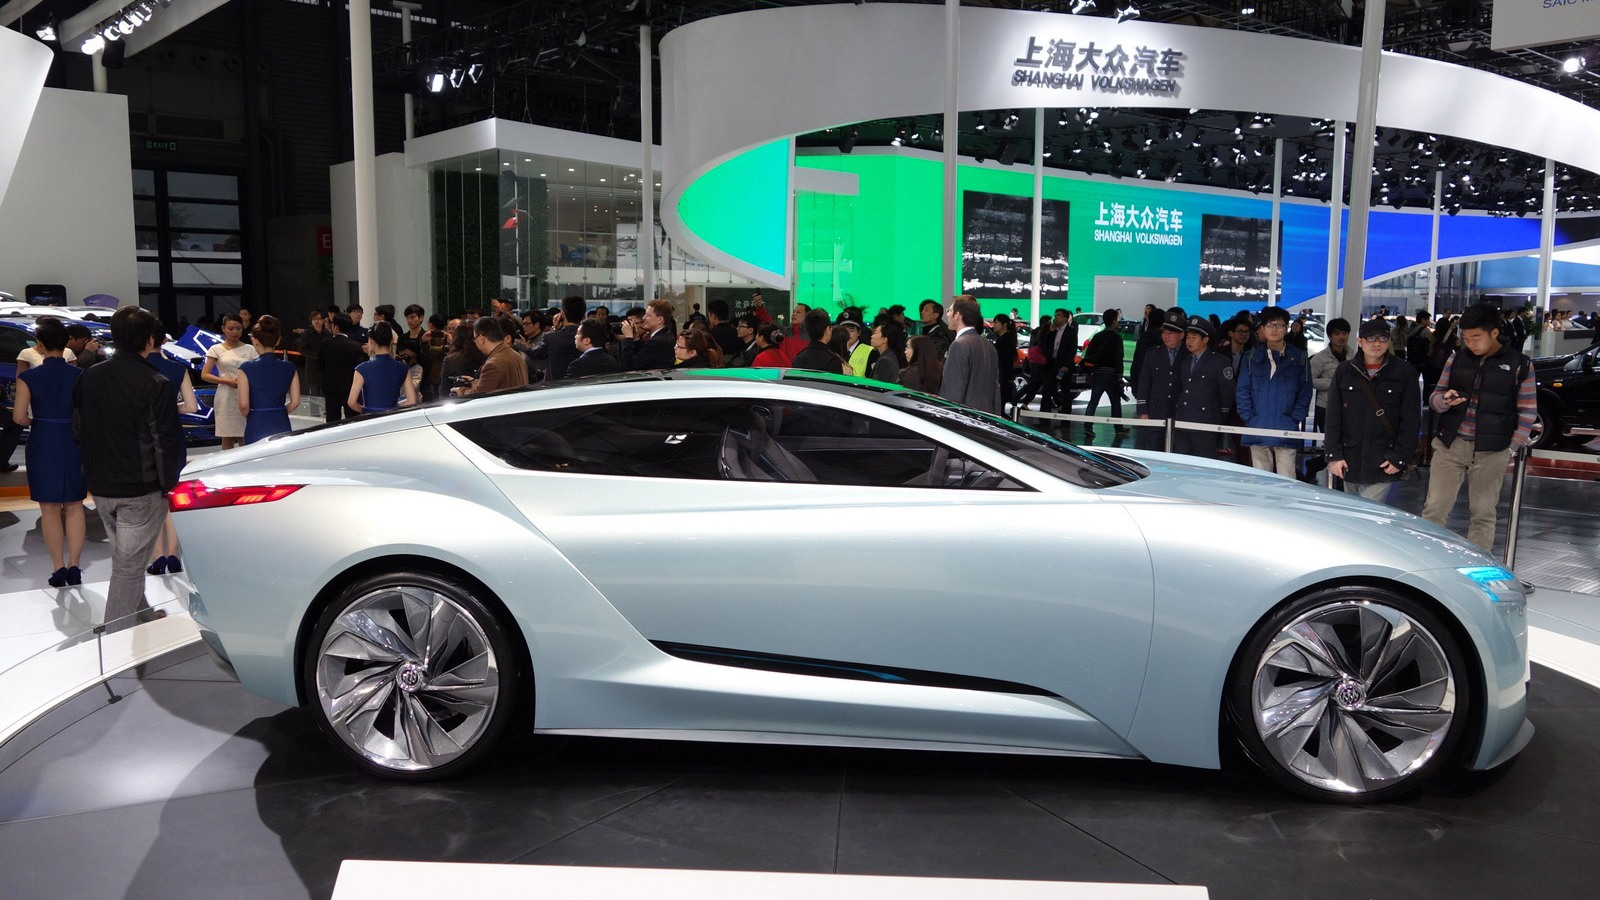 Buick Riviera Concept Isn't Your Father's: Shanghai Auto Show 2022 Buick Riviera Review, Concept, Images